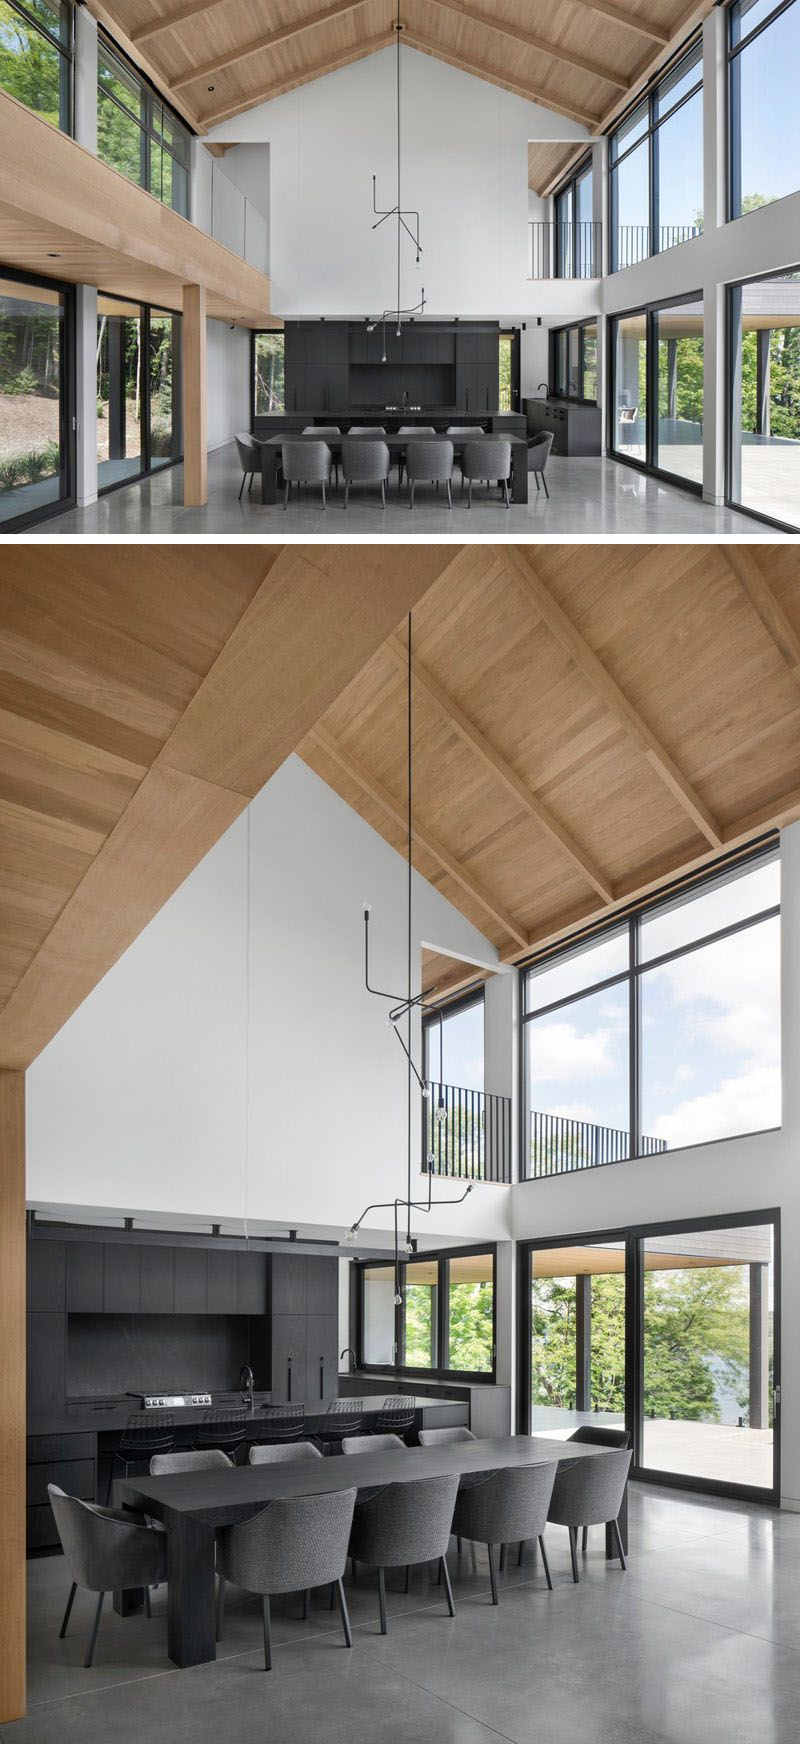 A Modern Barnhouse Design That Was Inspired By Local Farm Buildings Modern Barn House Barn House Plans Barn House Interior